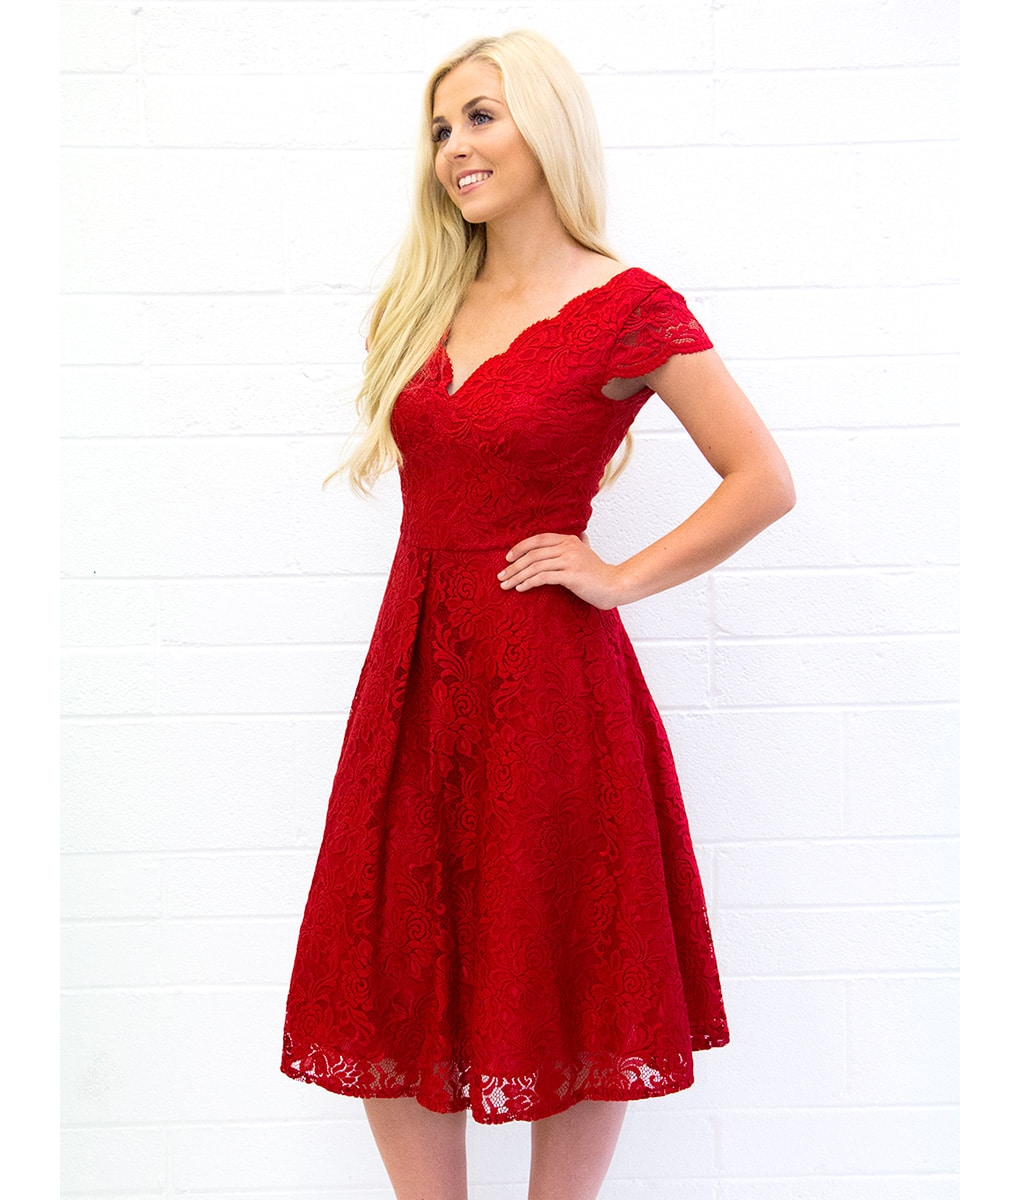 Alila-Red-Scallop-Lace-V-Neck-cap-sleeve-Dress-Jolie-Moi